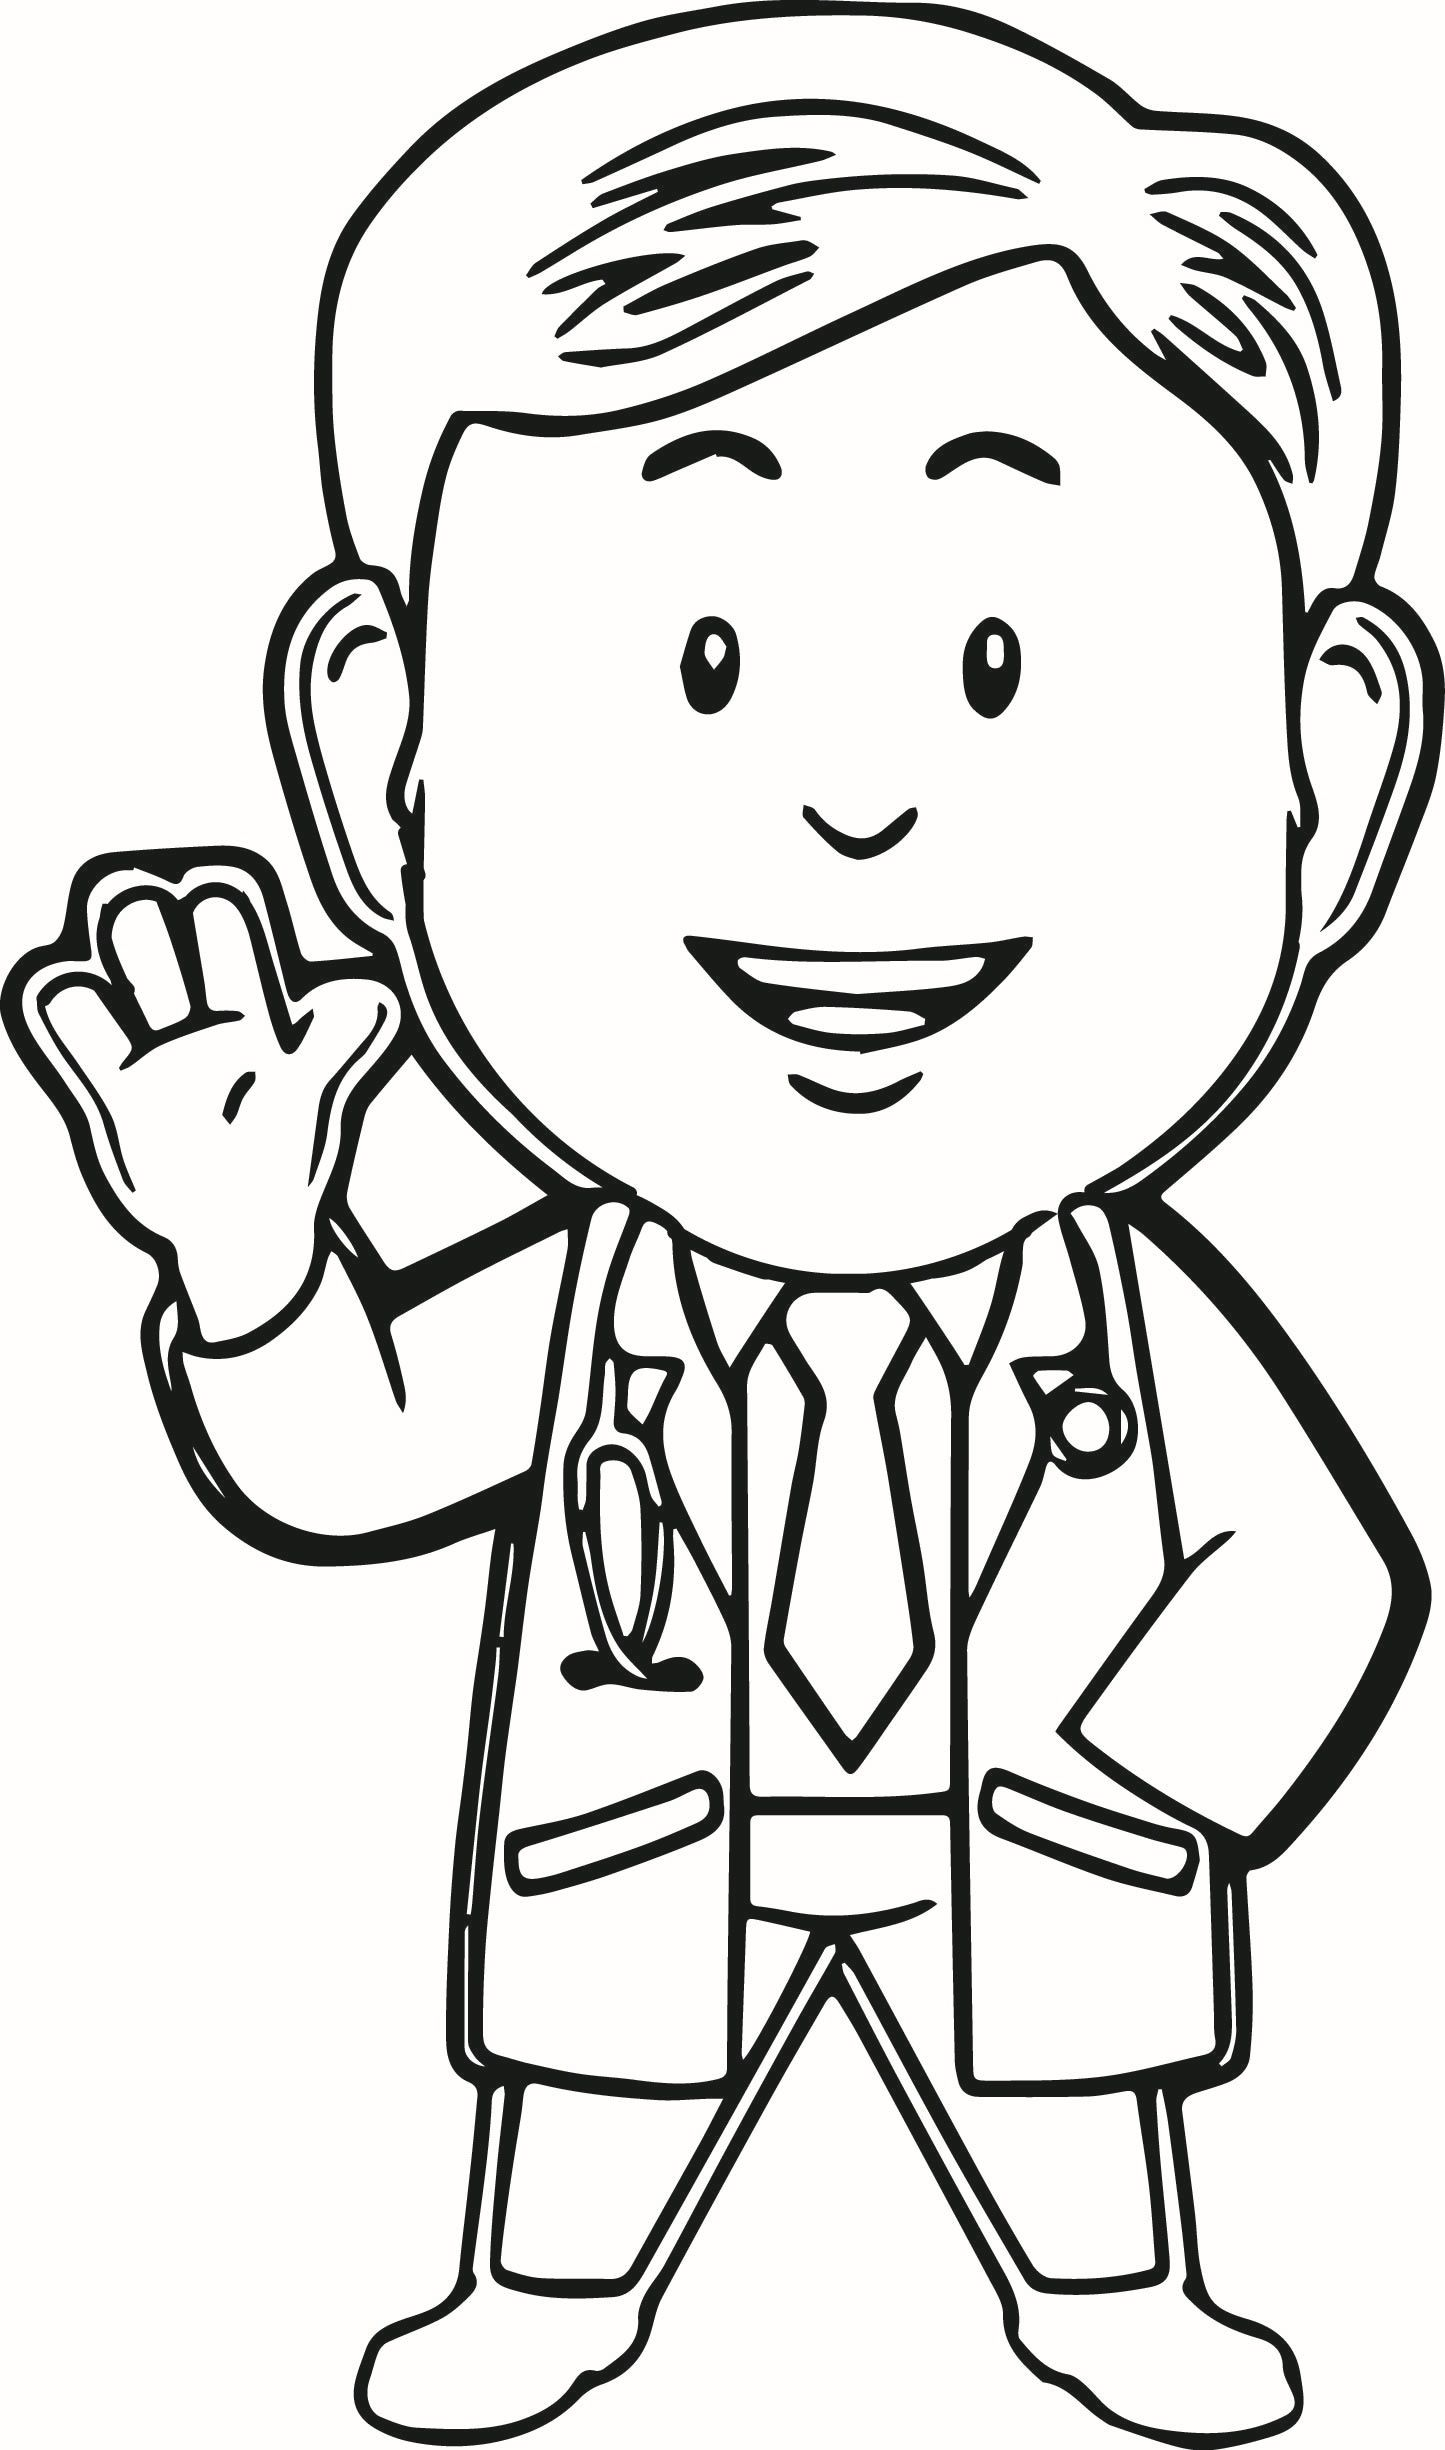 Doctor Coloring Pages For Kids - Coloring Home